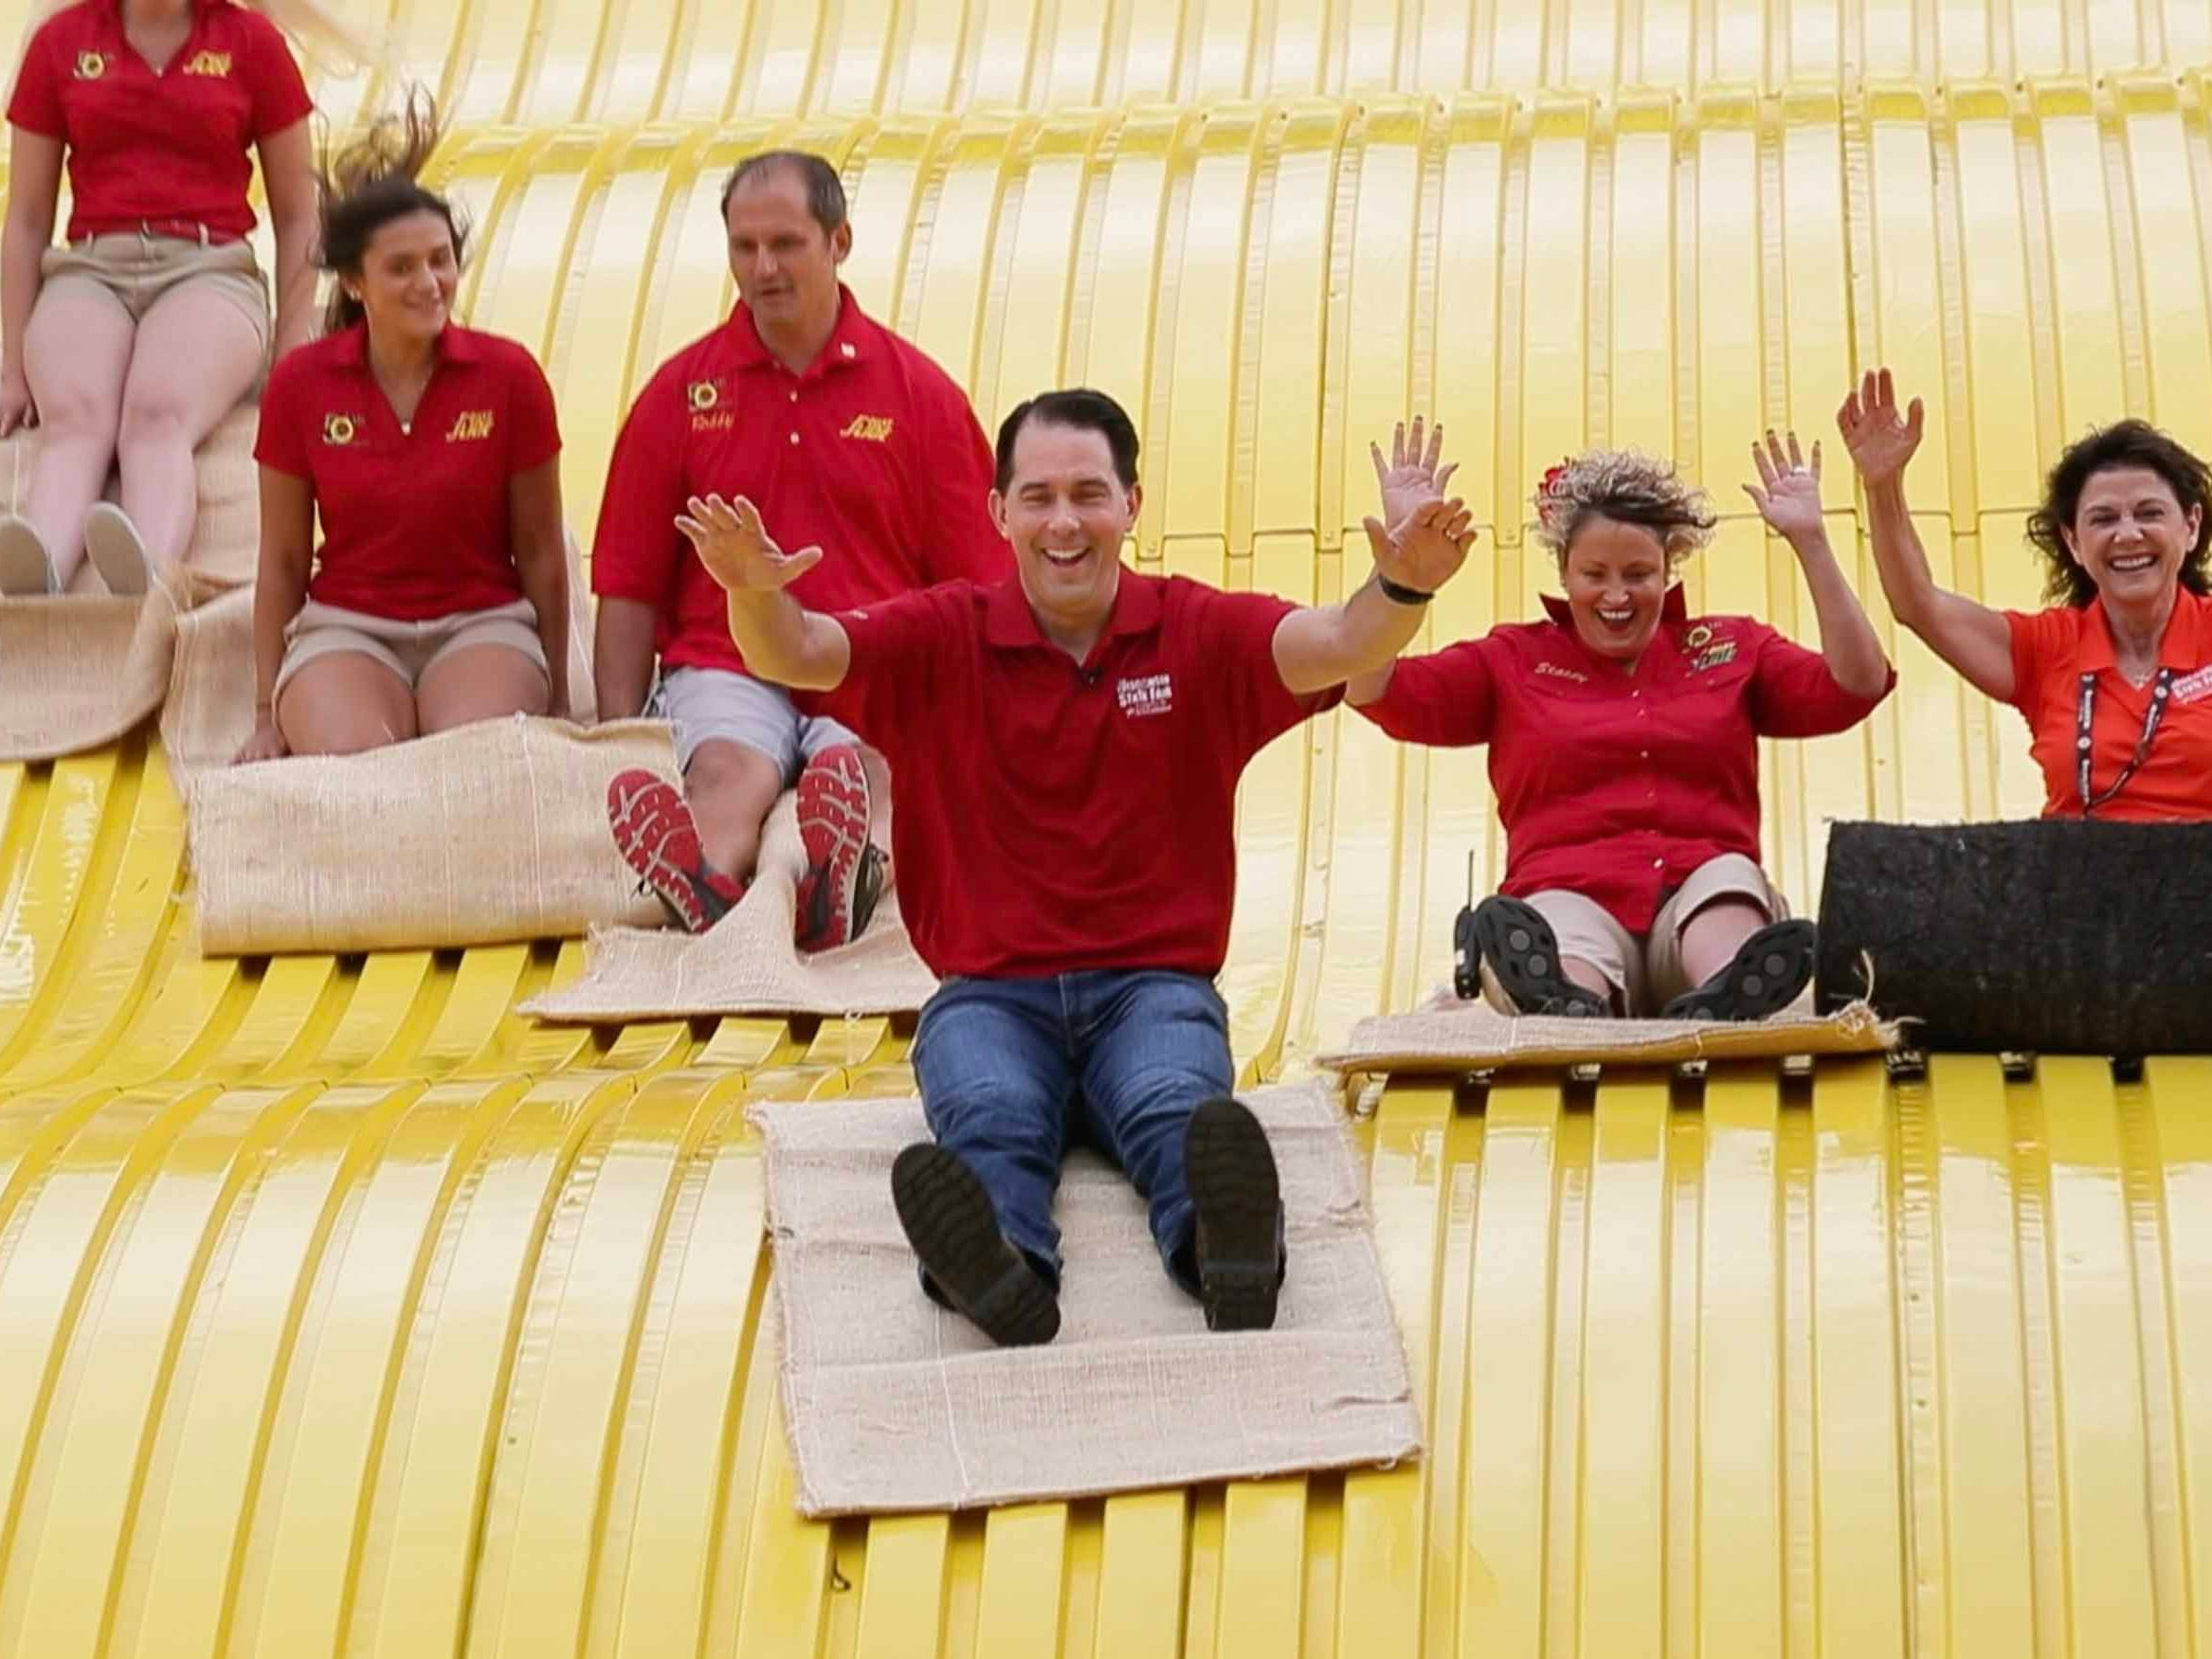 Gov. Scott Walker slides down the Giant Slide, marking the opening of the 167th Wisconsin State Fair and the 50th anniversary of the State Fair's Giant Slide at State Fair Park in West Allis on Thursday, Aug. 2, 2018. He was joined by operators of the slide, from left, Isabella Barona; her sister, Anibella Barona; their father, Robby Barona; and their mother, Stacey Barona. At right is state Sen. Leah Vukmir.